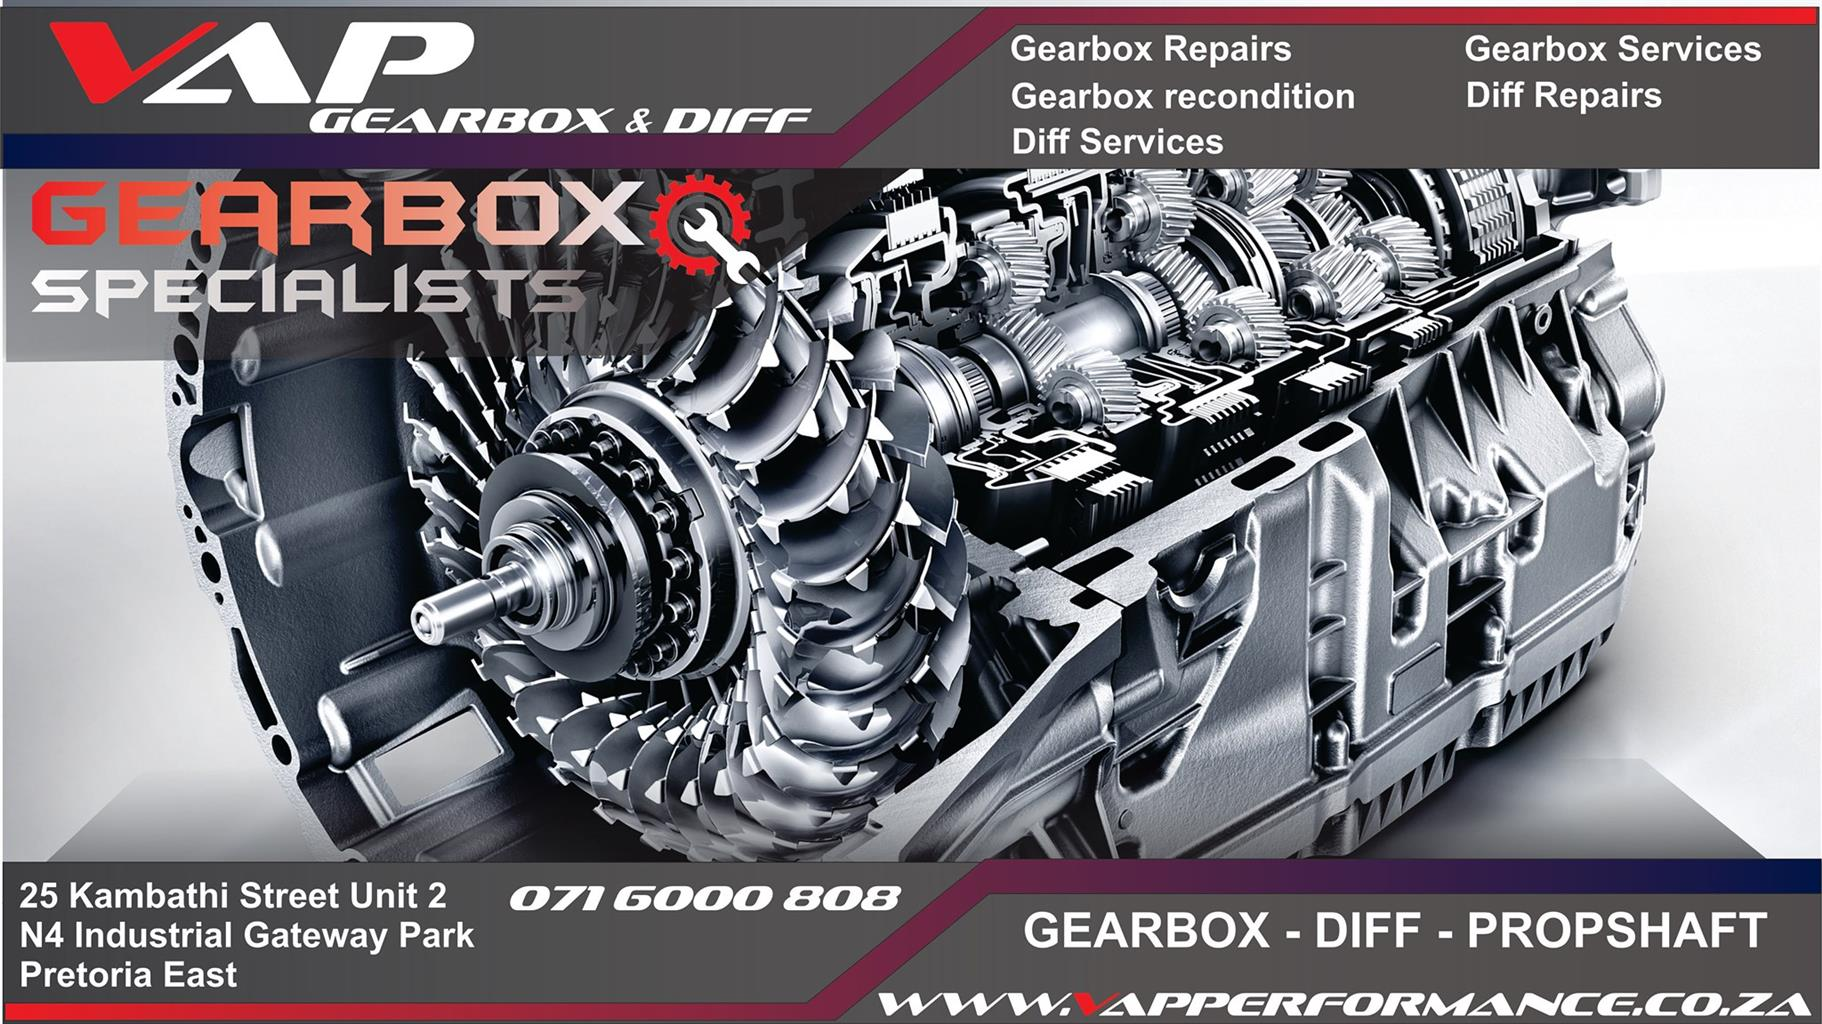 DSG and S tronic Mechatronic Gearbox repair and sales